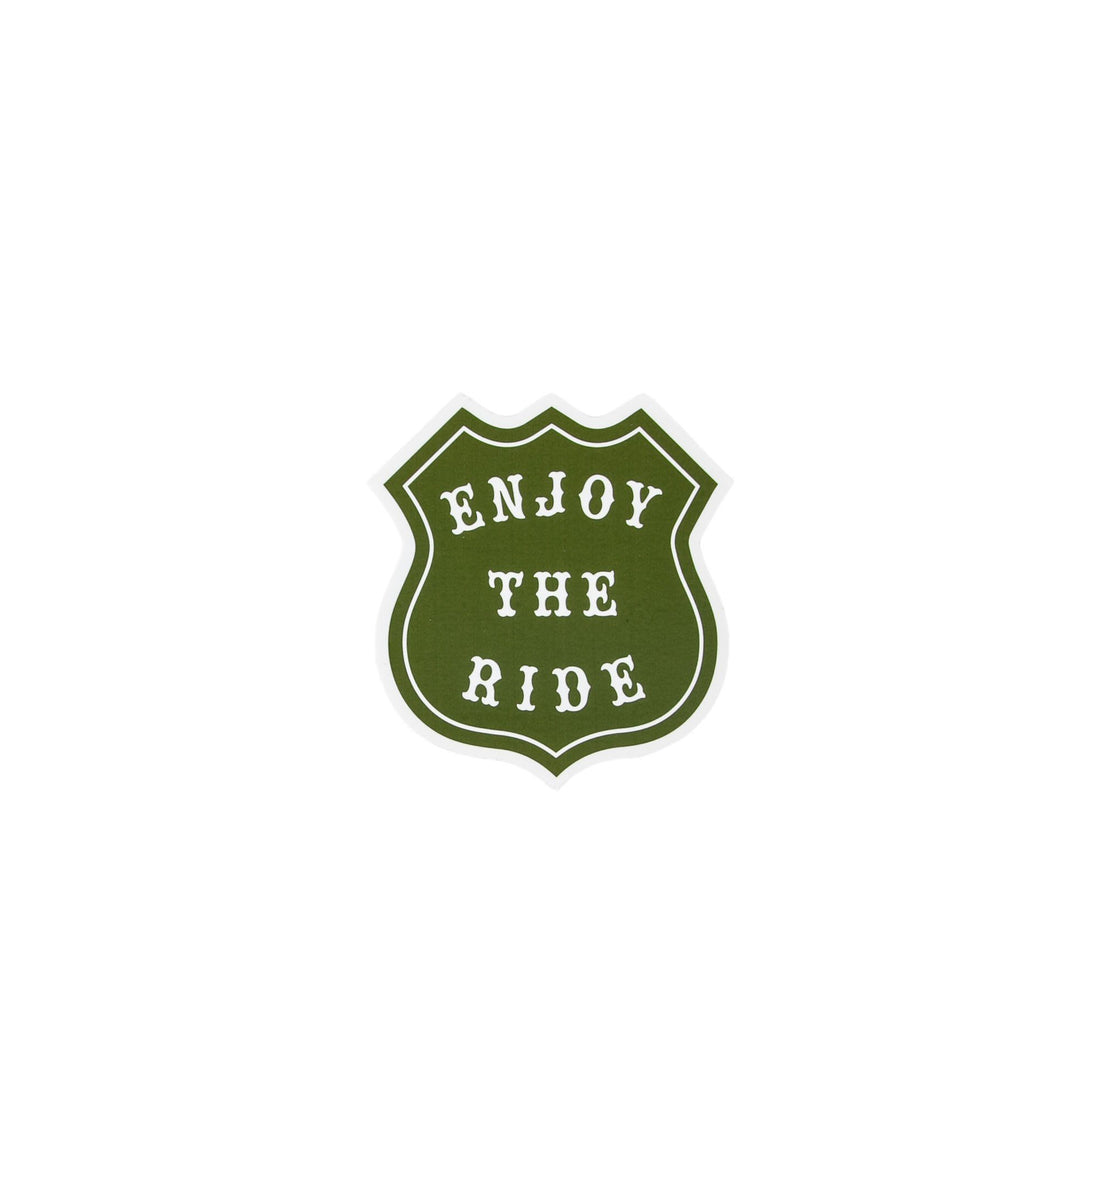 Enjoy The Ride Sticker - Stickers/Pins/Patches - Iron and Resin